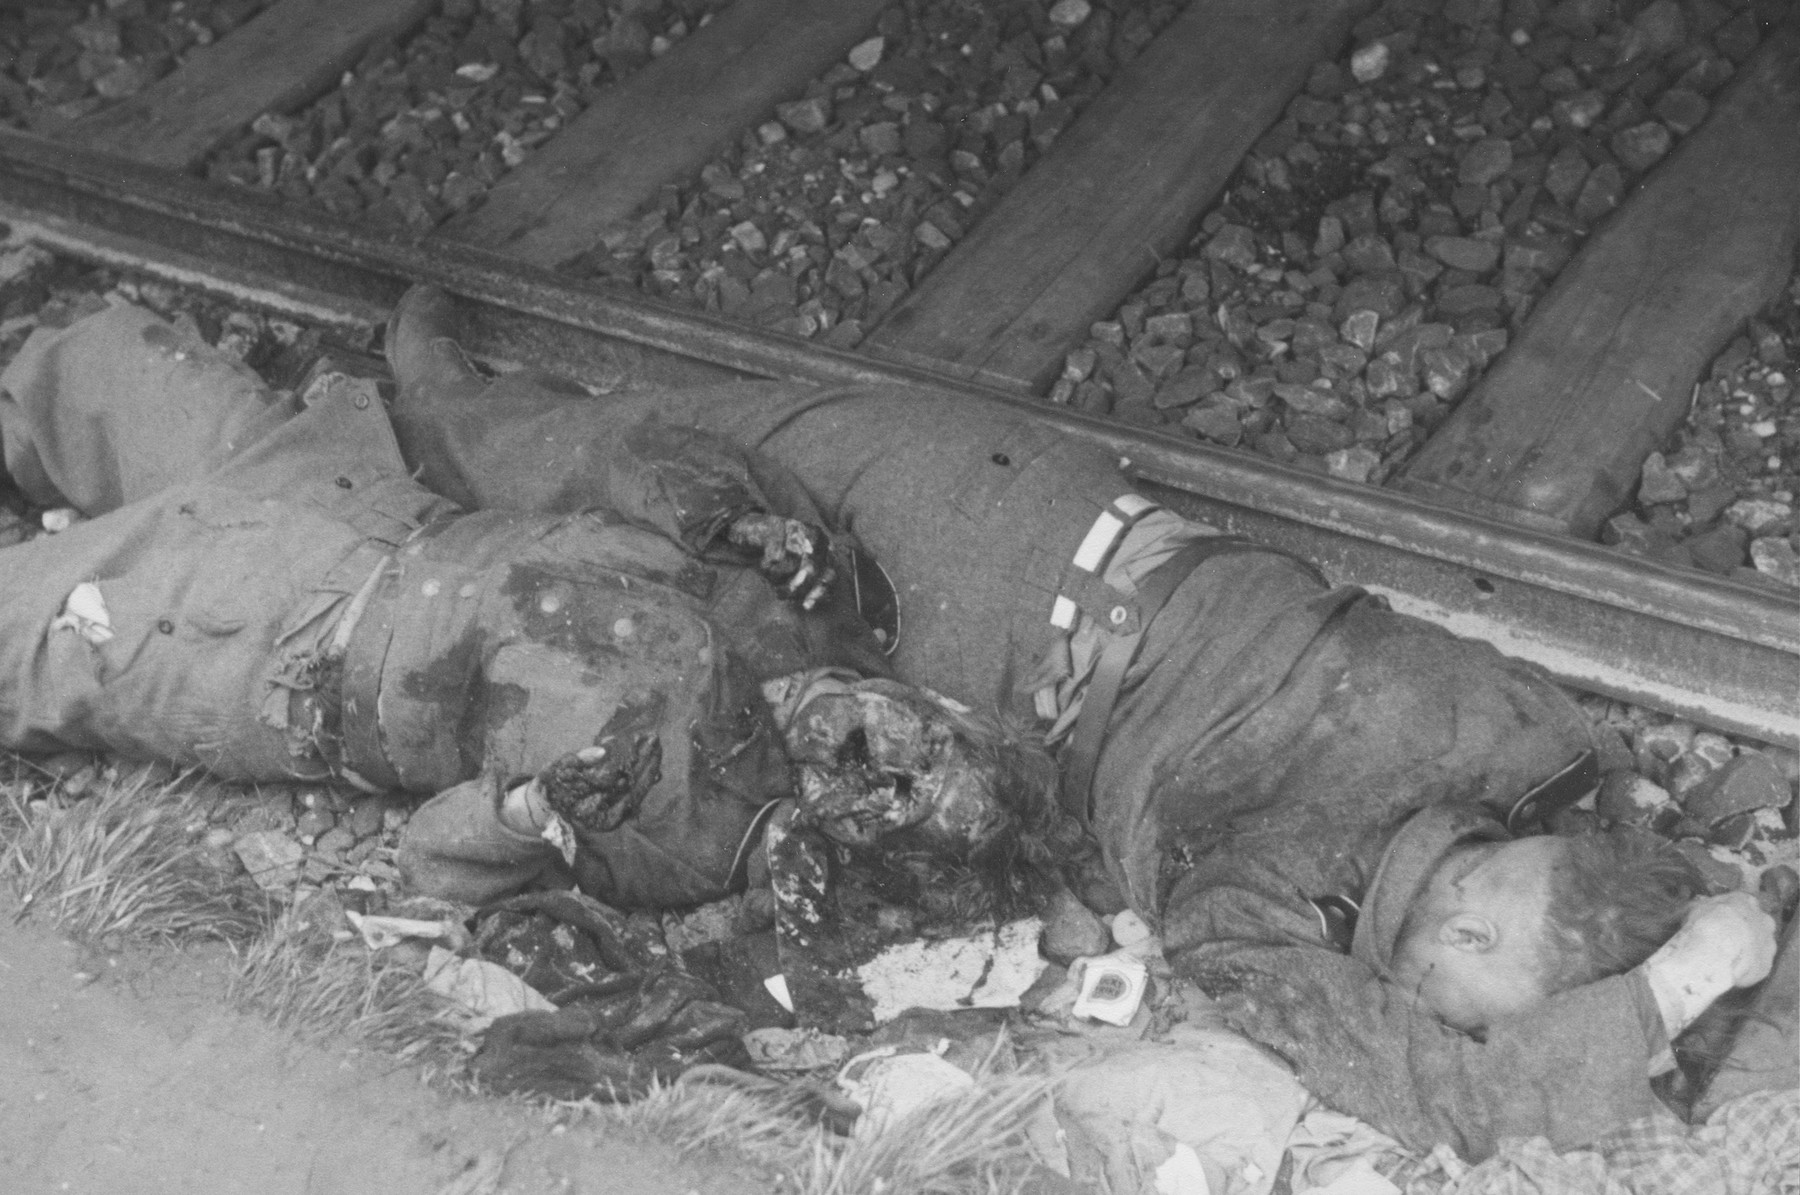 Camp guards, killed in revenge killings, lie next to the railroad tracks in the Dachau concentration camp.